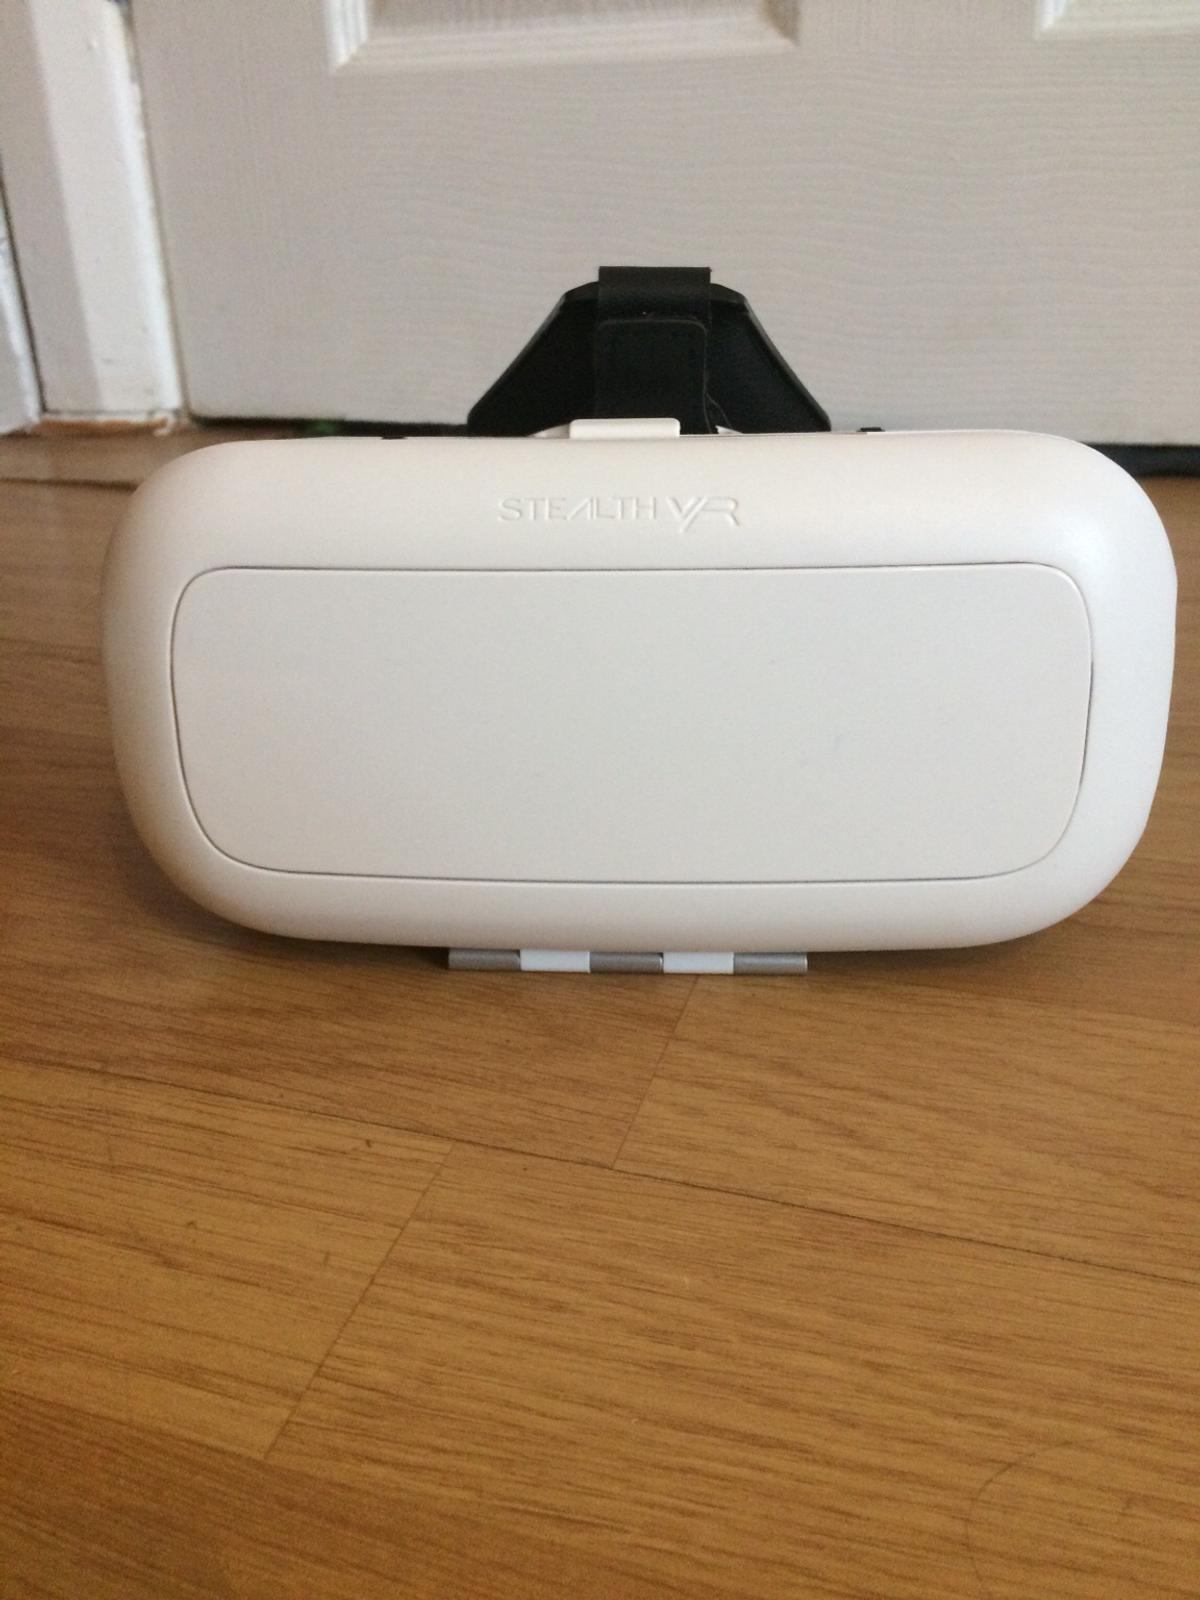 Virtual Reality Headset in TW16 London Borough of Hounslow